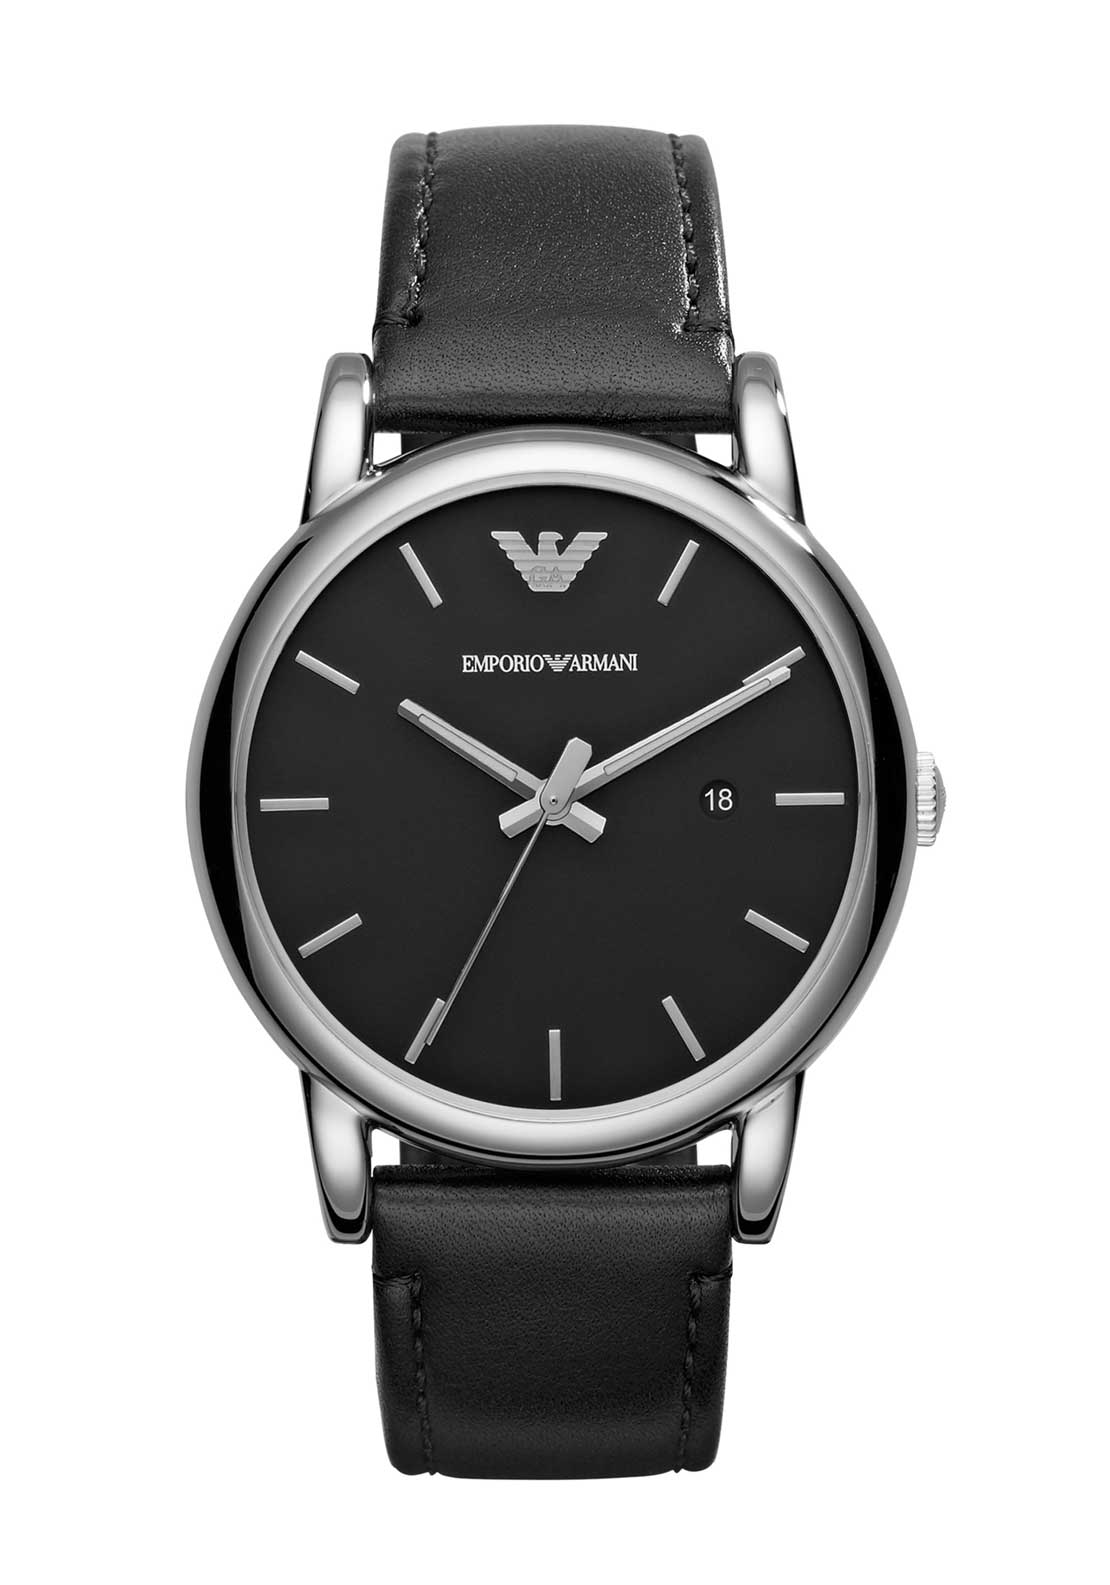 Emporio Armani Mens Classic Leather Strap Watch, Black